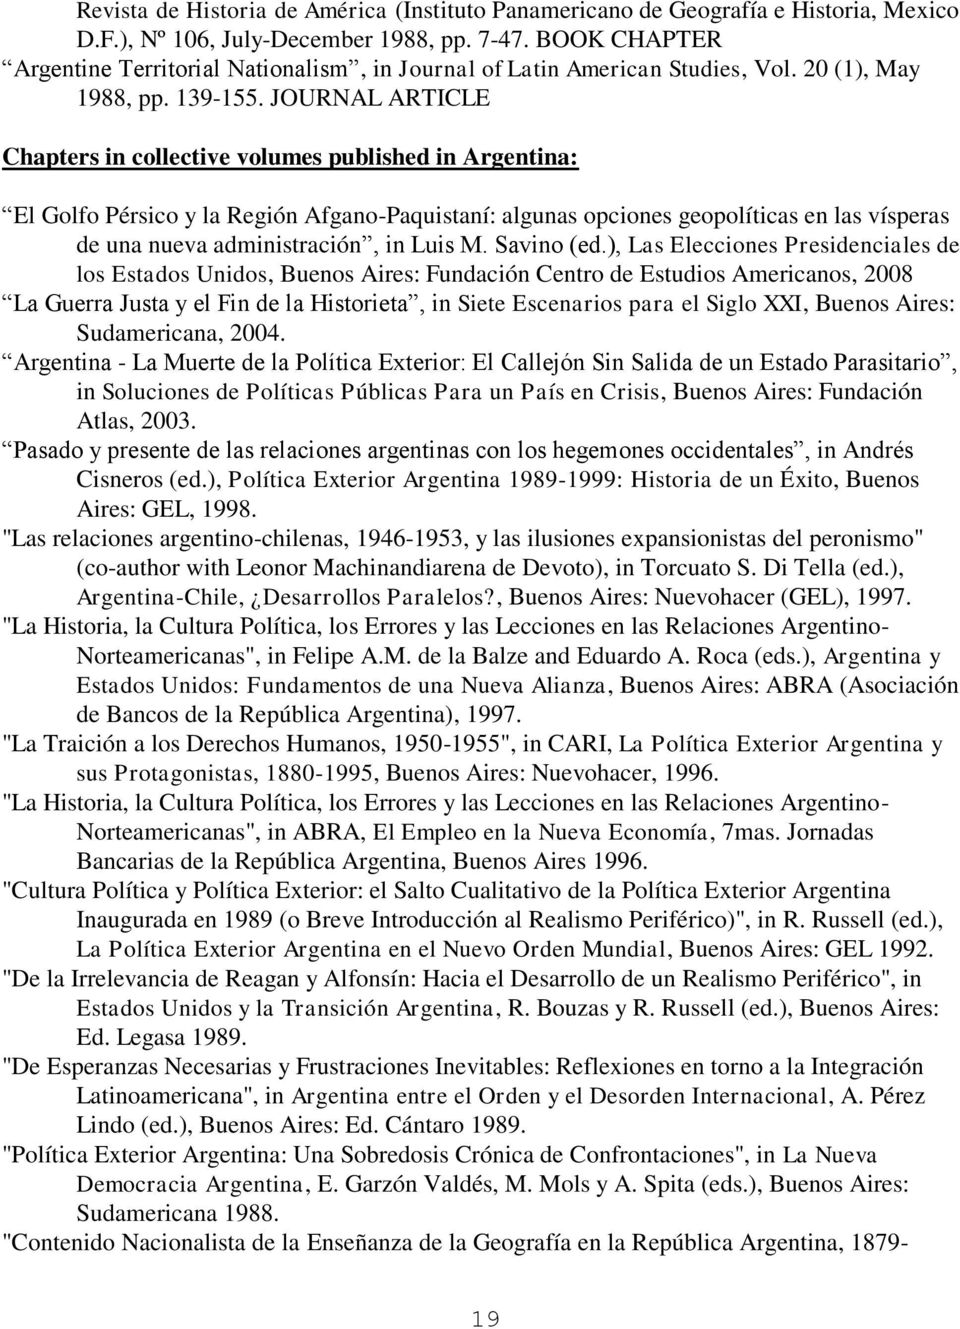 JOURNAL ARTICLE Chapters in collective volumes published in Argentina: El Golfo Pérsico y la Región Afgano-Paquistaní: algunas opciones geopolíticas en las vísperas de una nueva administración, in